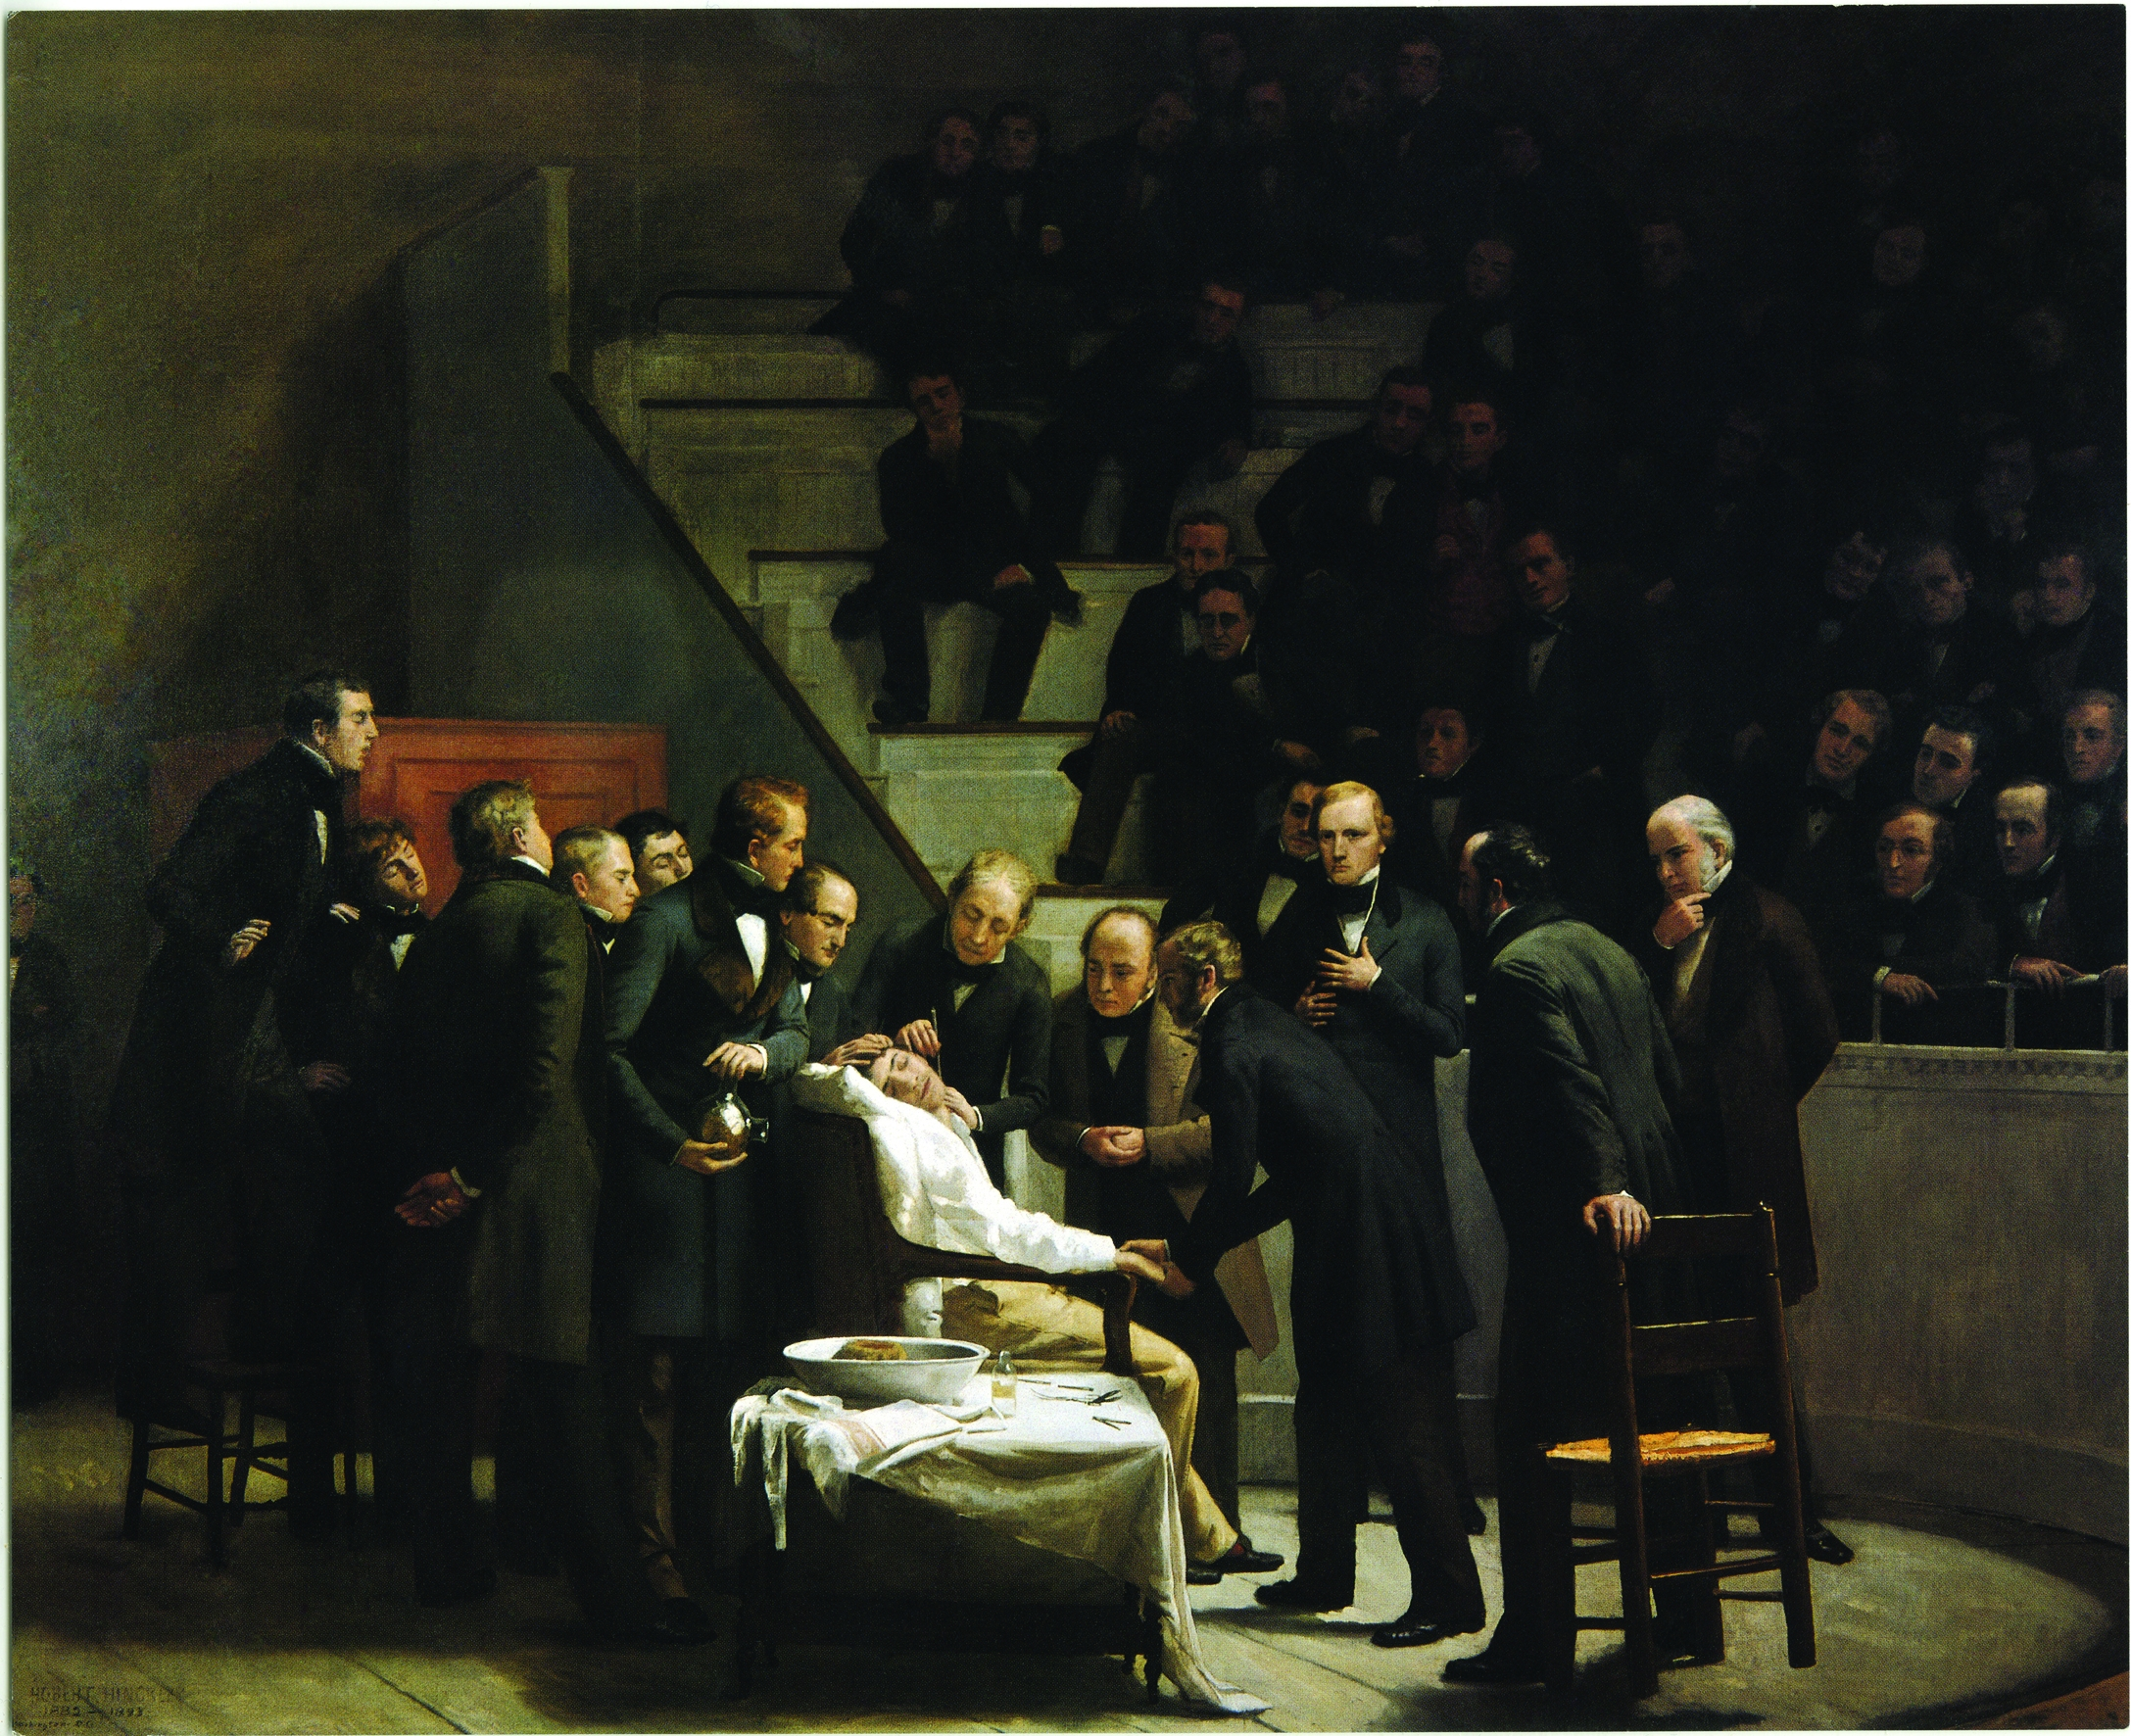 Medical Milestone: Robert Cutler Hinckley's classic painting The First Operation with Ether depicts anesthesia being used on a patient in 1846.